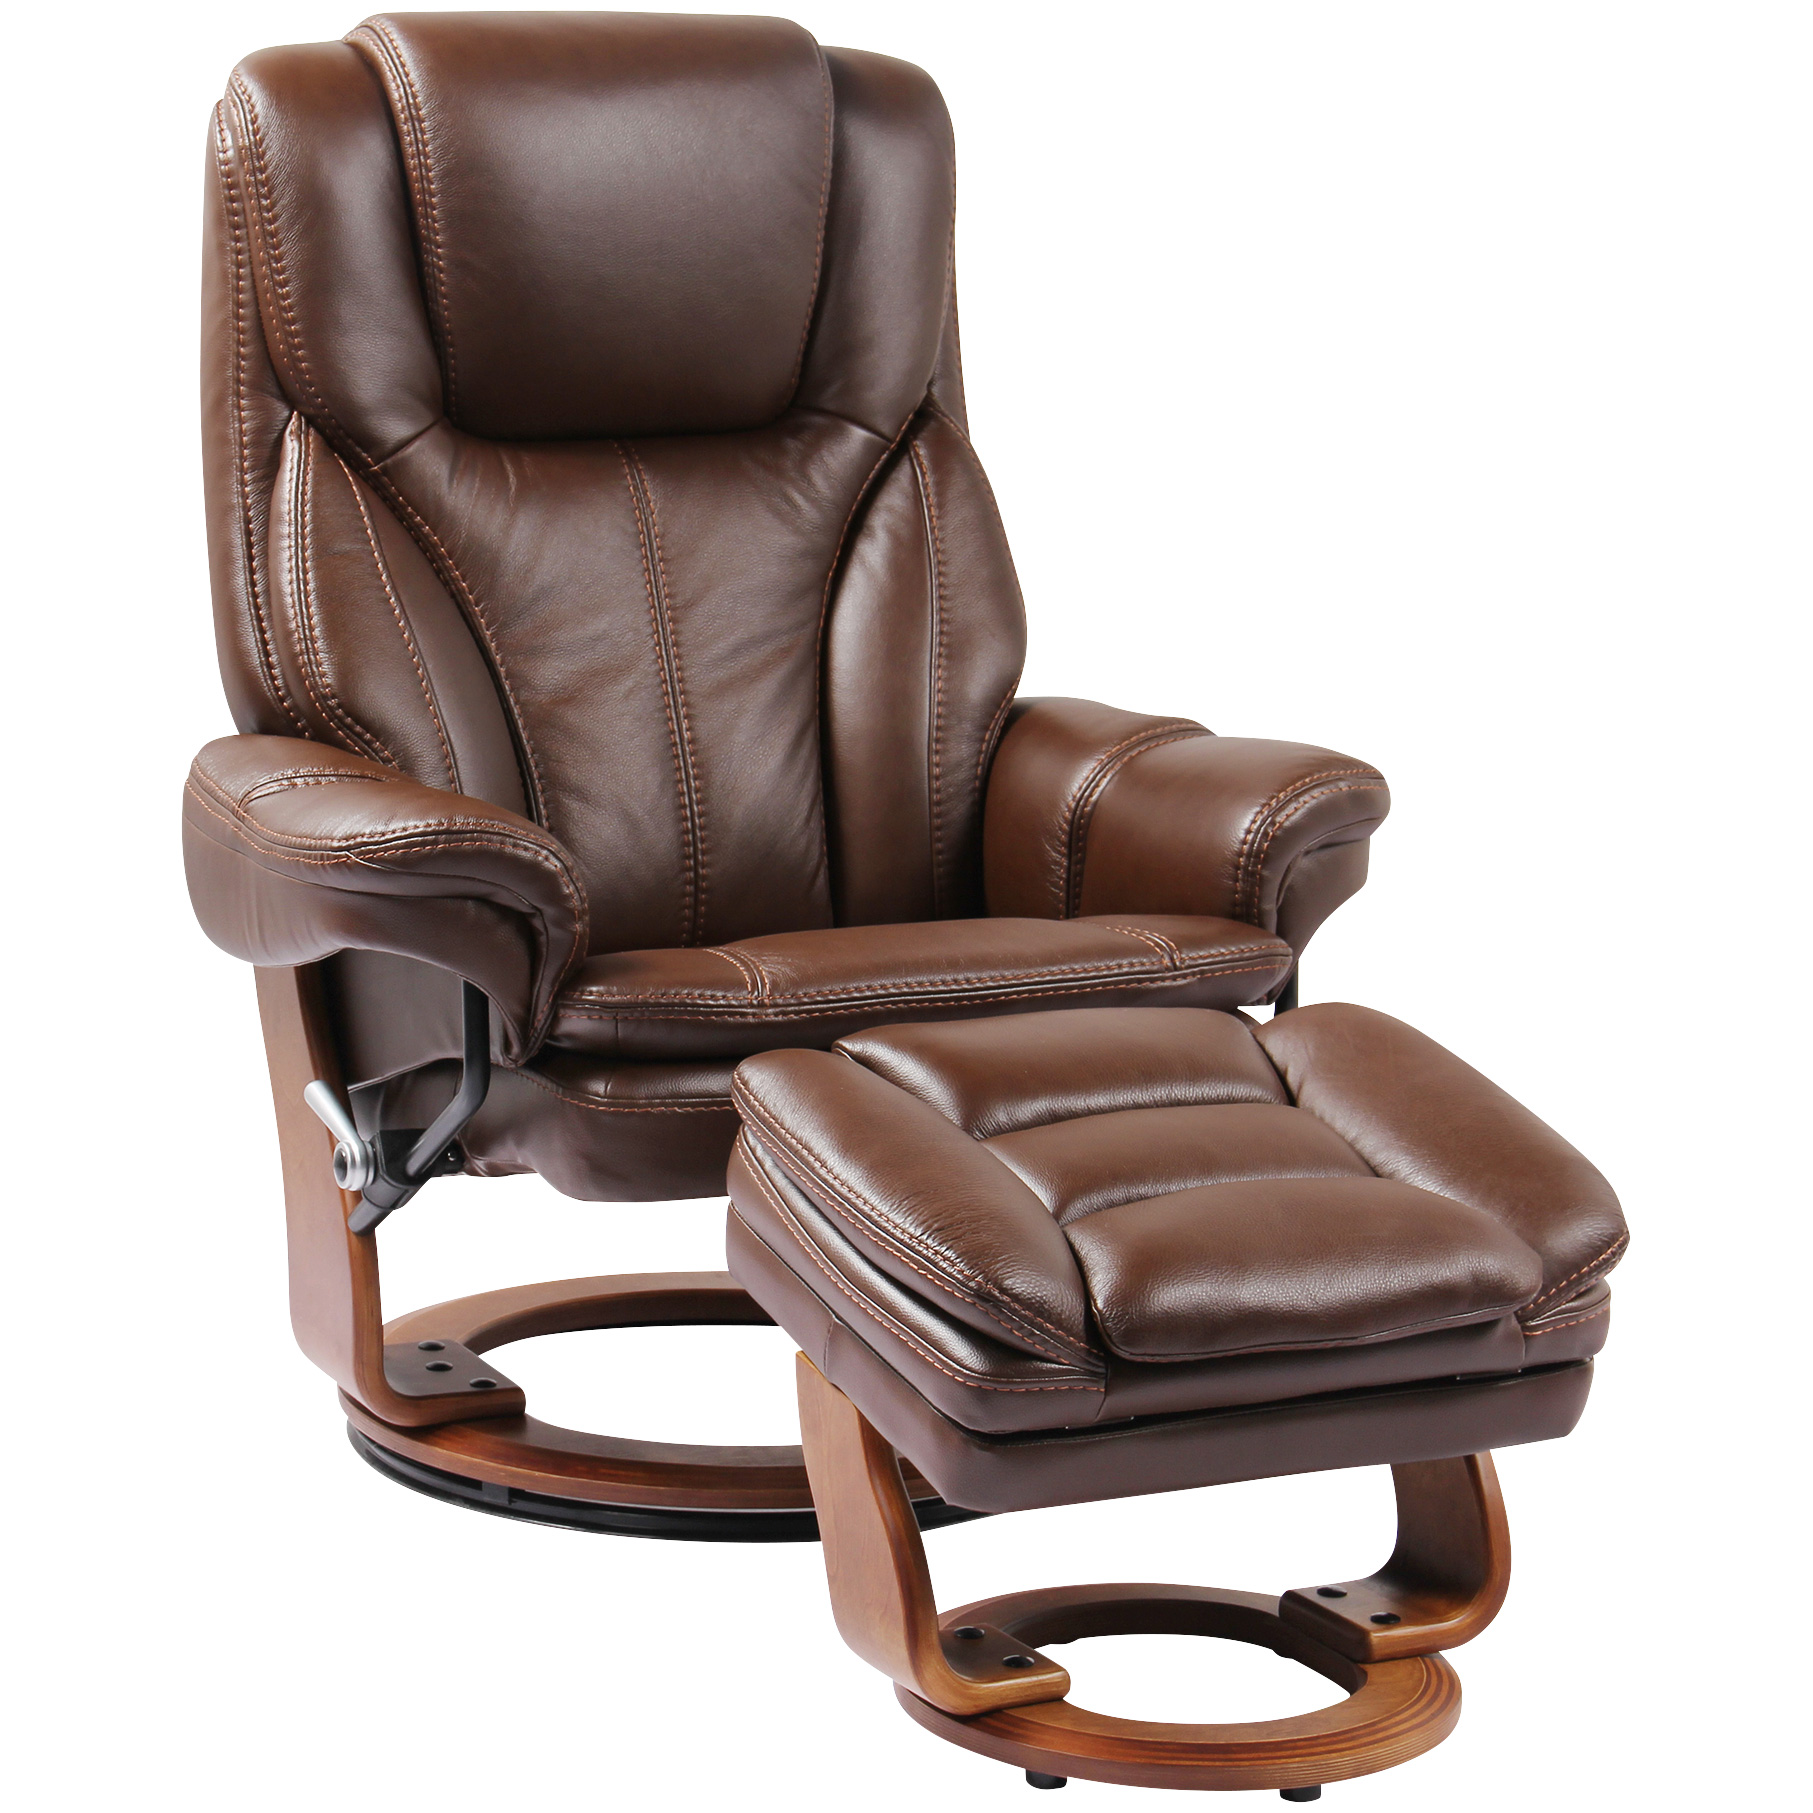 Benchmaster | Hana Brown Recliner Chair with Ottoman